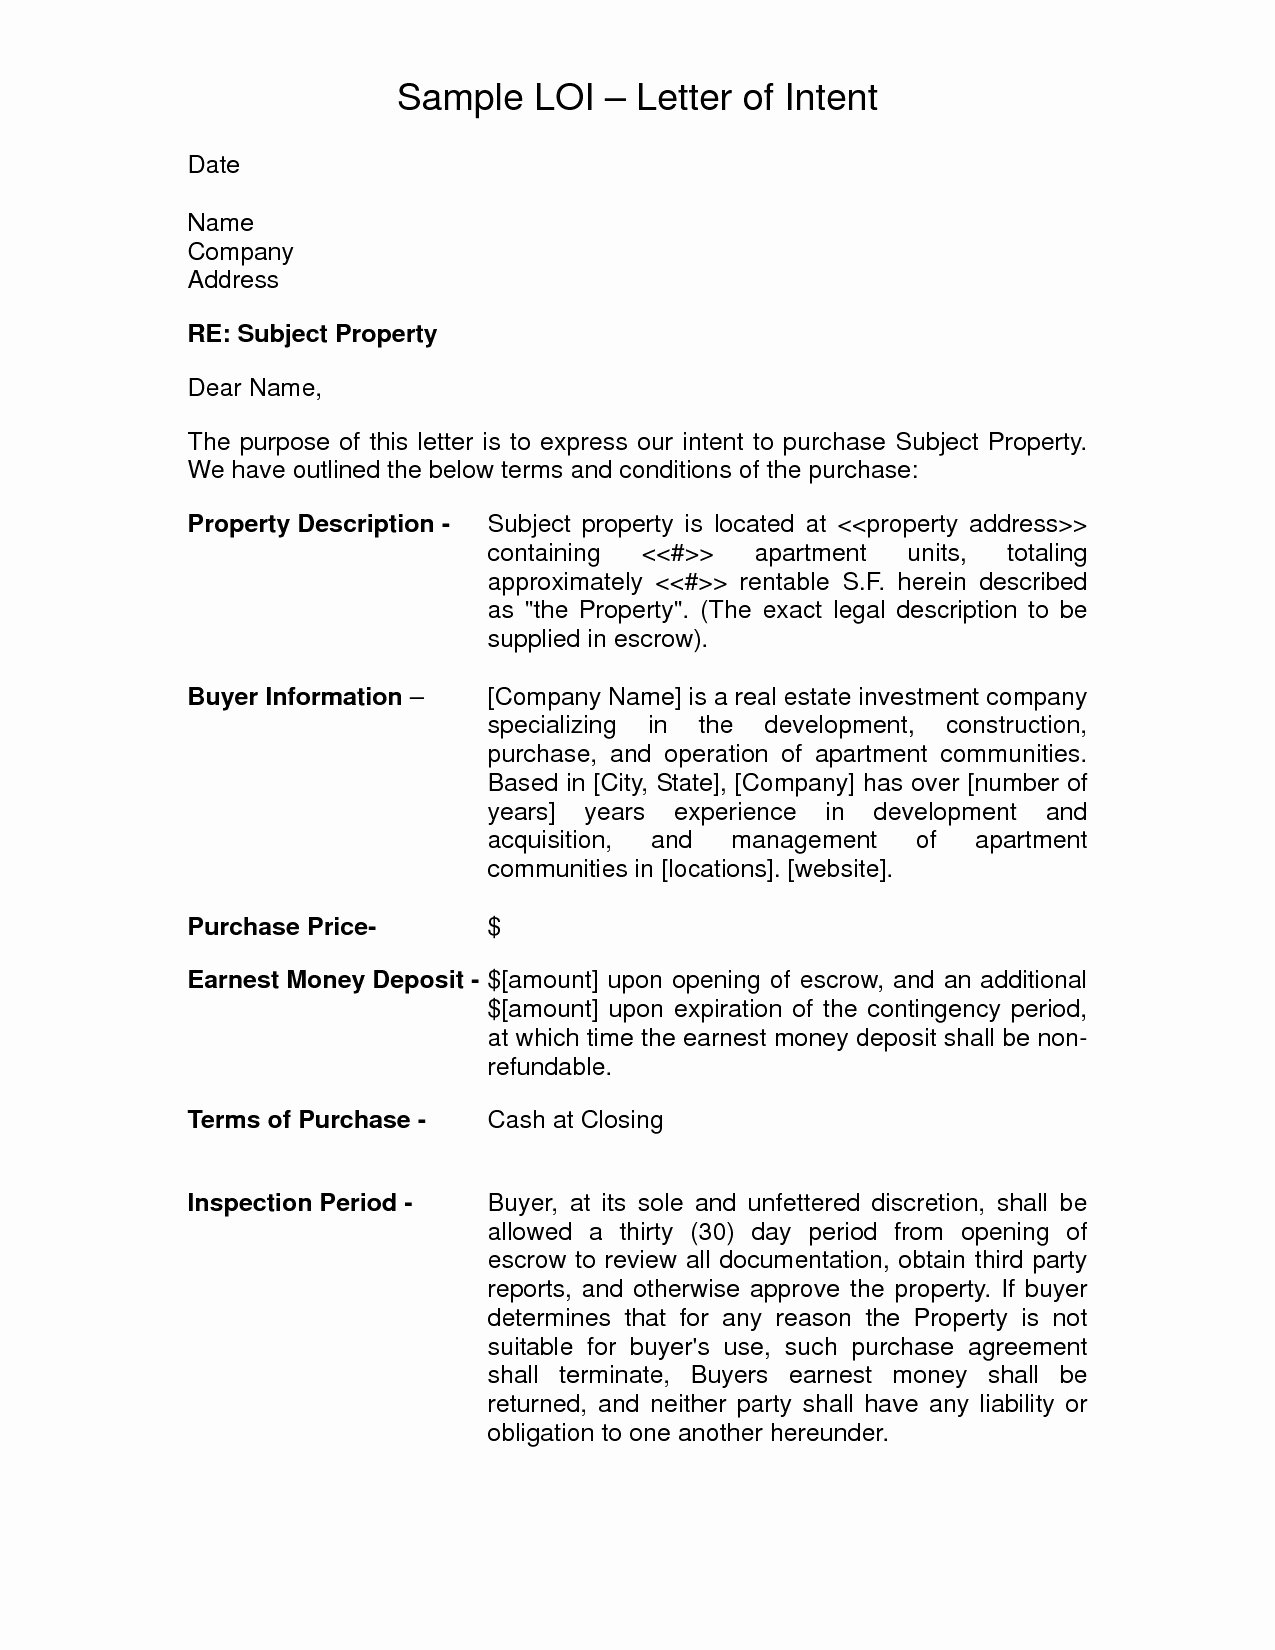 Letter Of Intent to Purchase Real Estate Template Lovely Letter Intent to Purchase Real Estate Template Examples